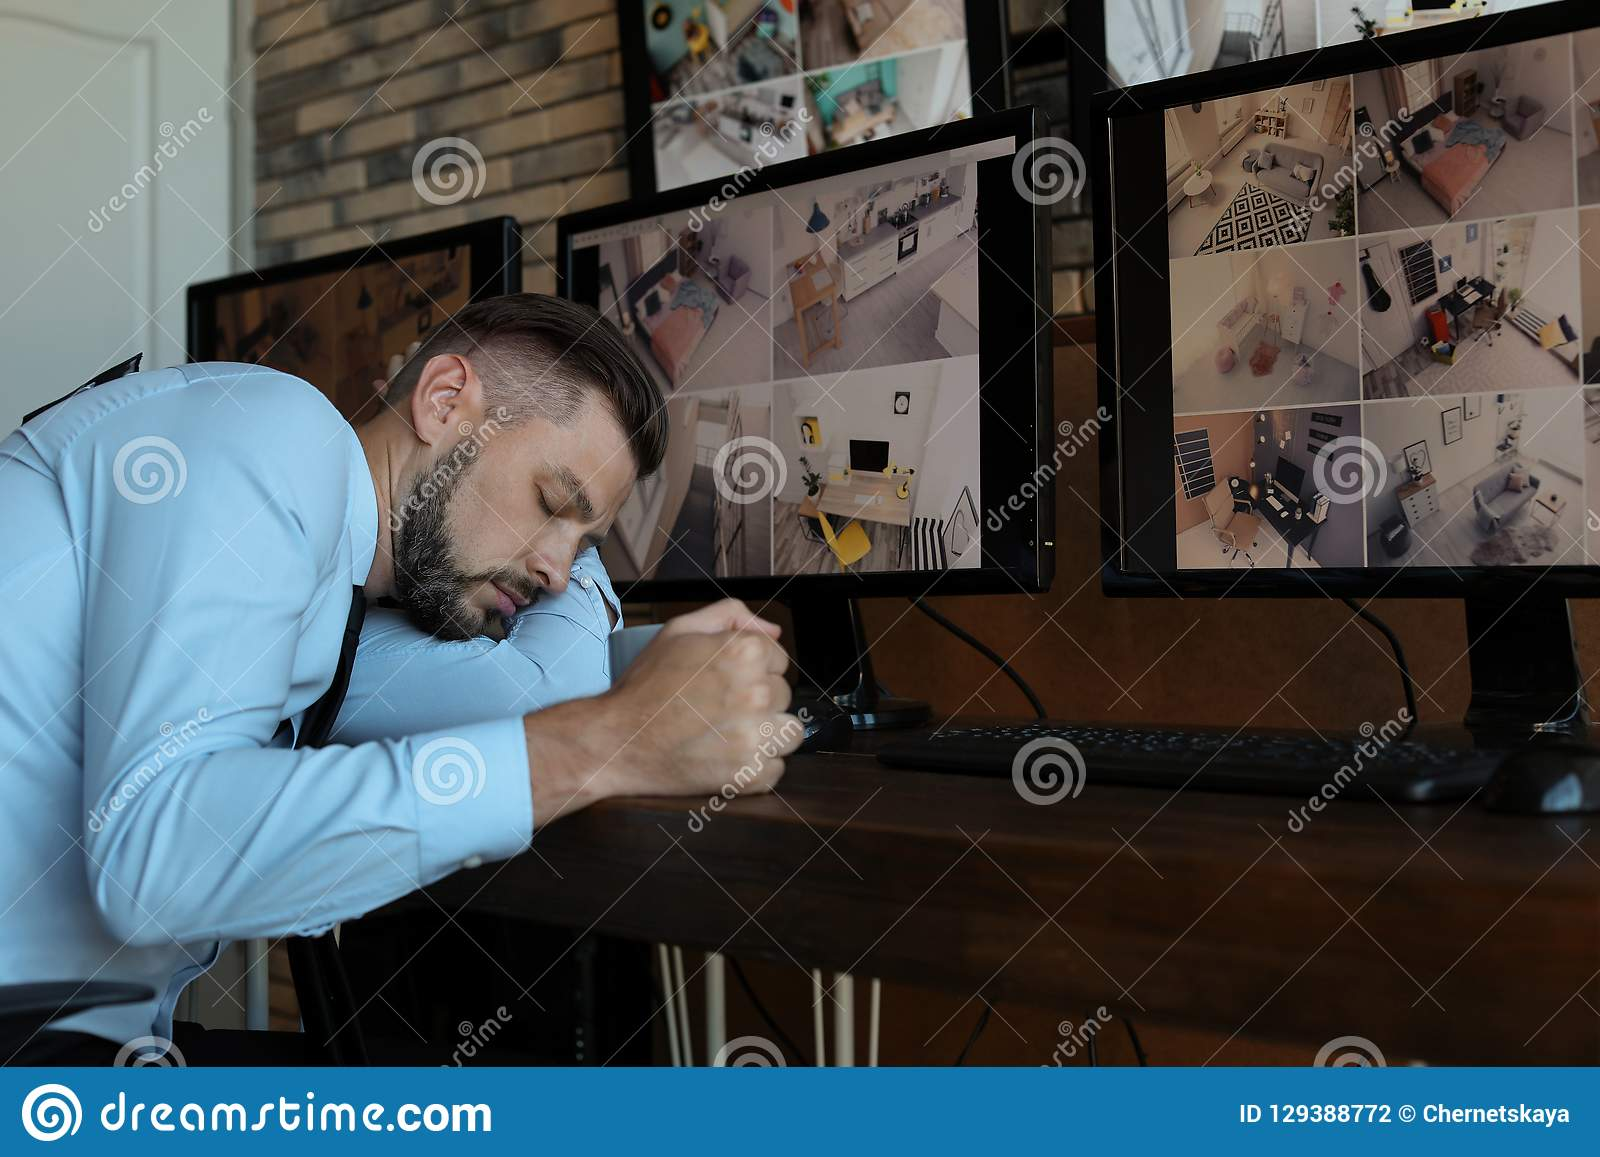 Male security guard sleeping at workplace.